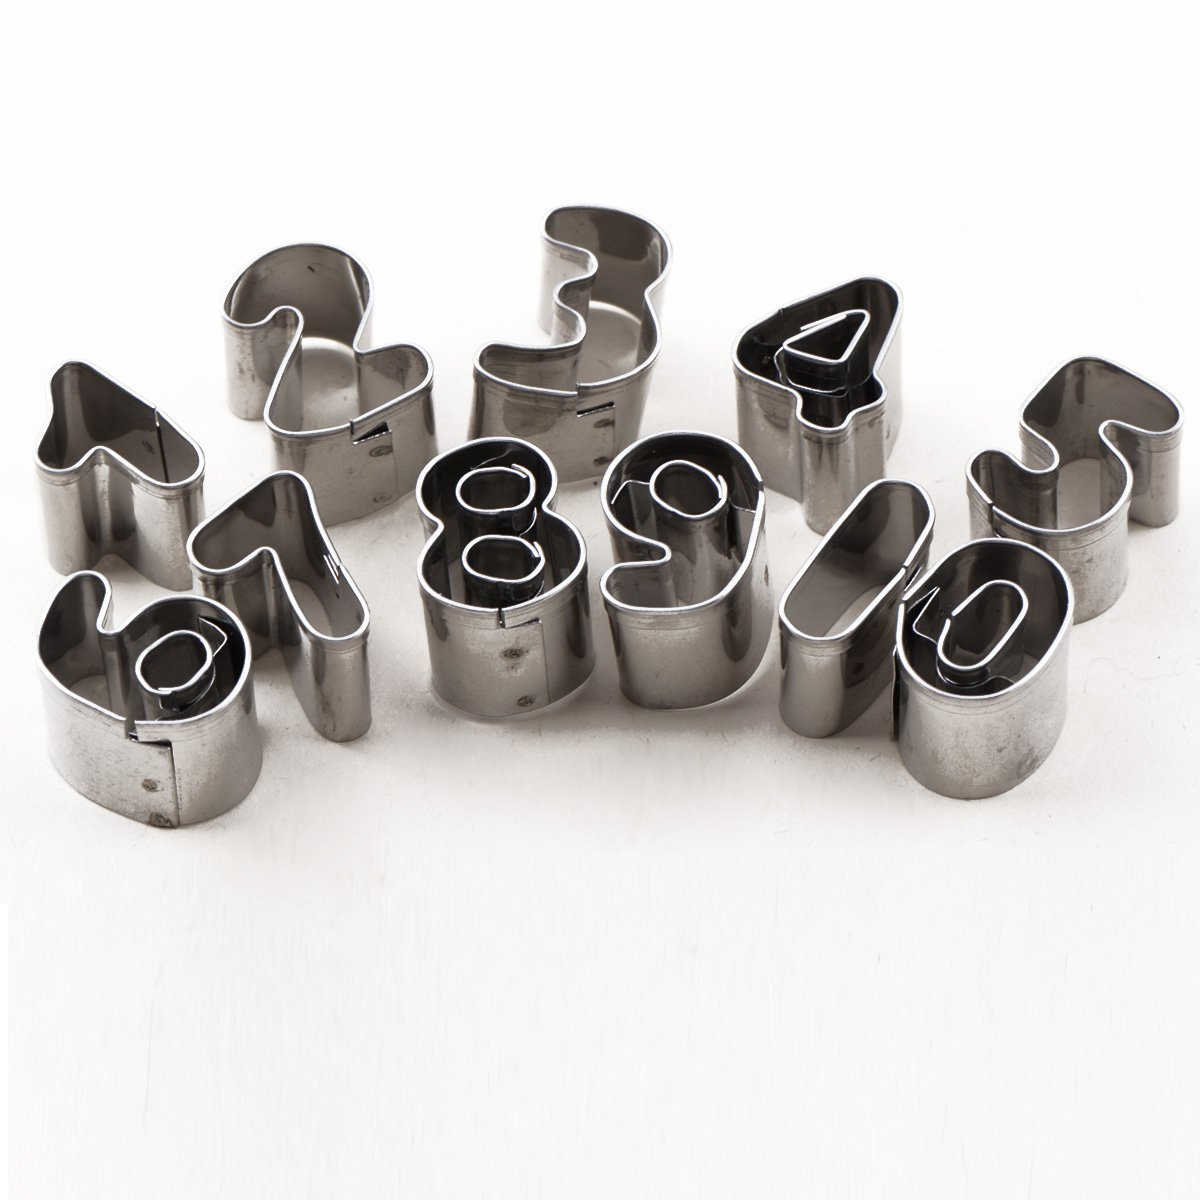 Letters and Numbers Shaped Set of 37 Metal Cutters for Cake Decorating, 37 pcs Switty